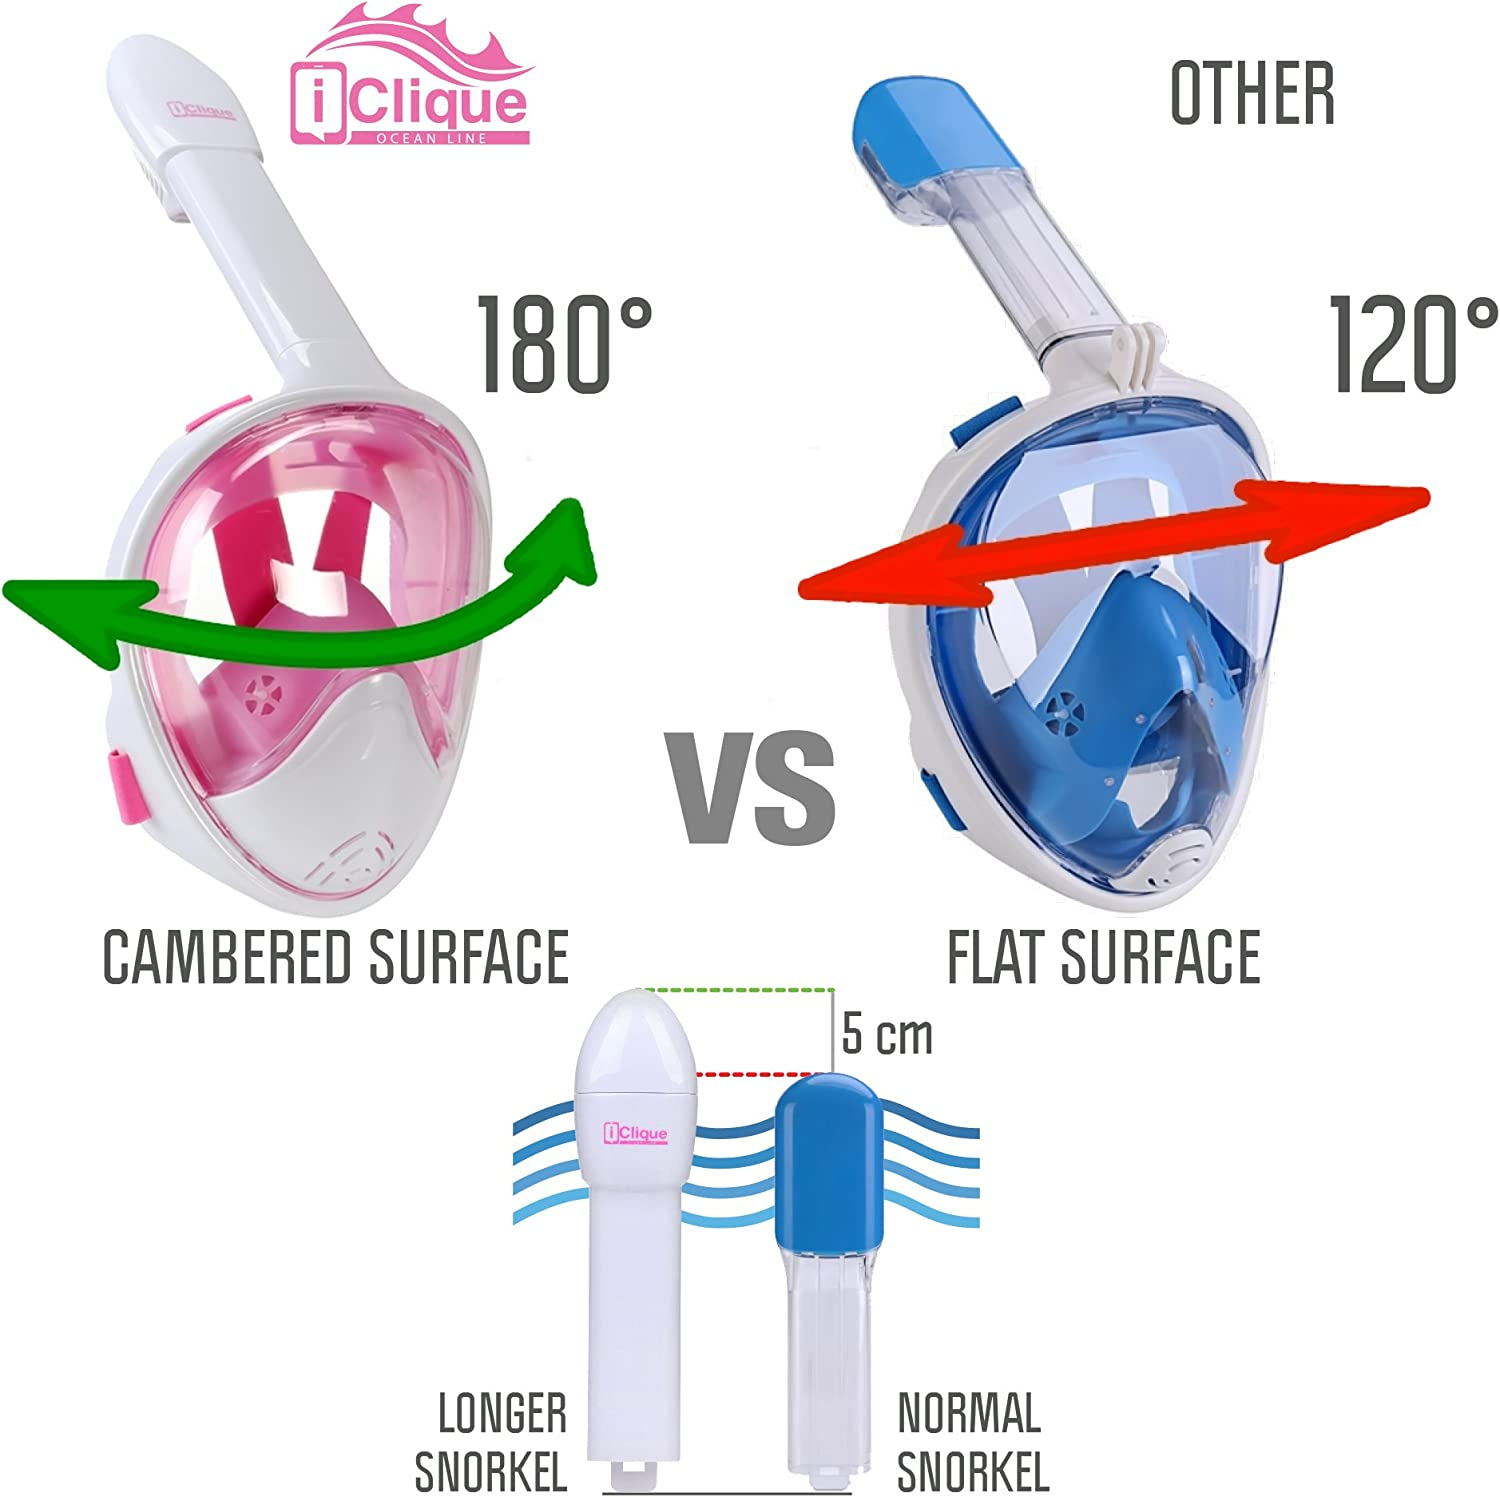 Iclique Full Face Snorkel Mask Tubeless Anti Fog Anti Leak Equipment For Adults Kids 180 Panoramic Viewing Free Swimming Waterproof Case For Phone Gopro Adapter Pink S M